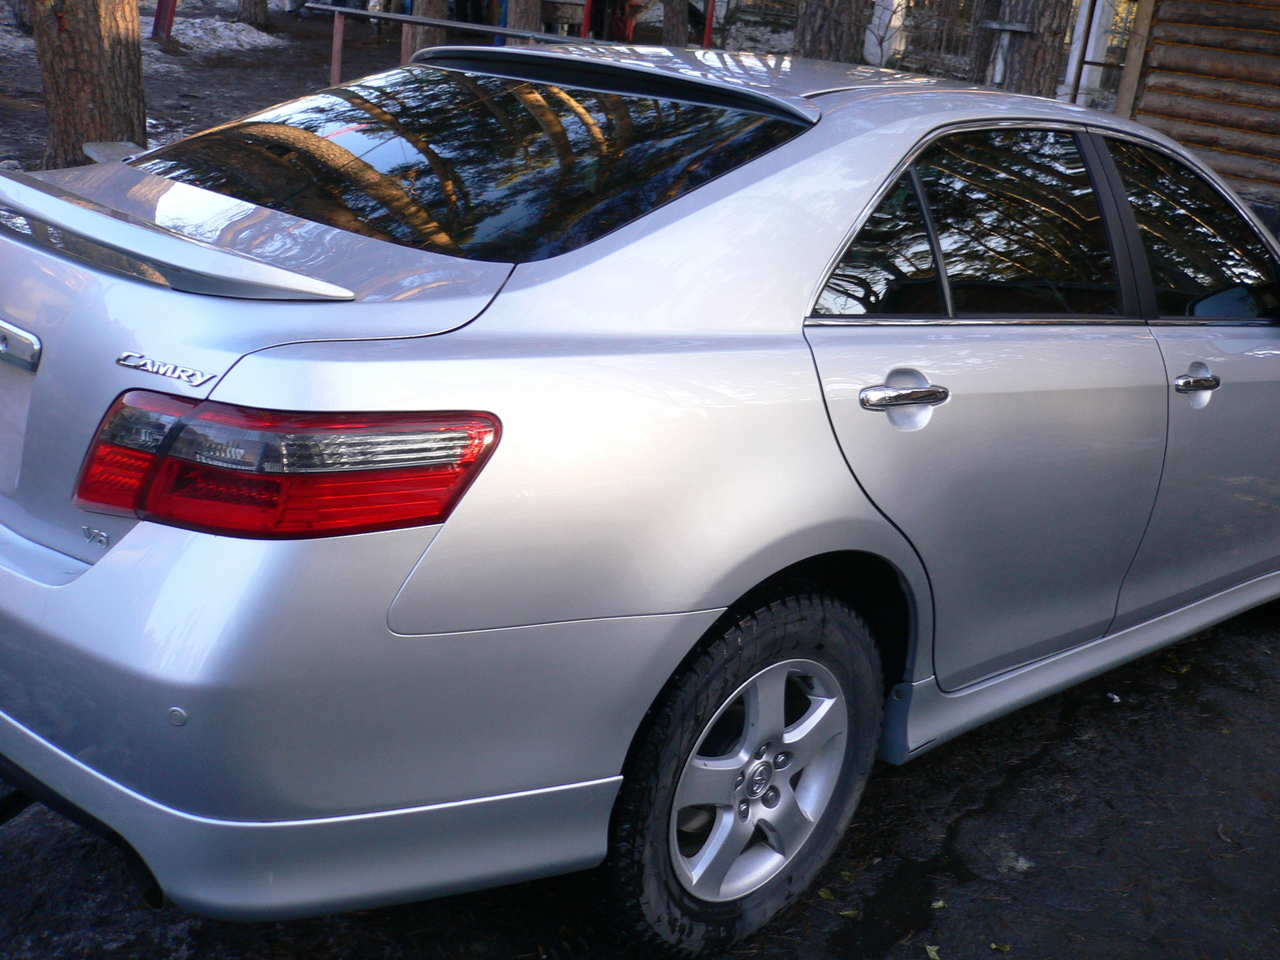 2006 toyota camry photos 3 5 gasoline ff automatic for sale. Black Bedroom Furniture Sets. Home Design Ideas